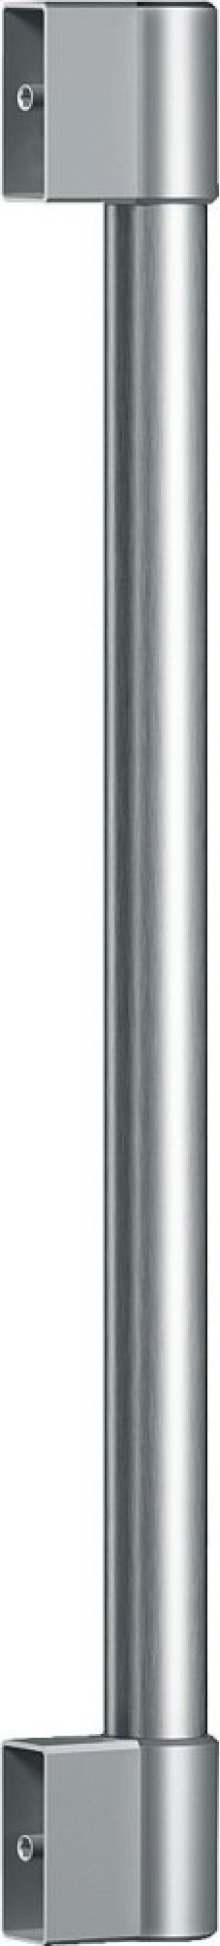 22-Inch Professional Handle for Under Counter